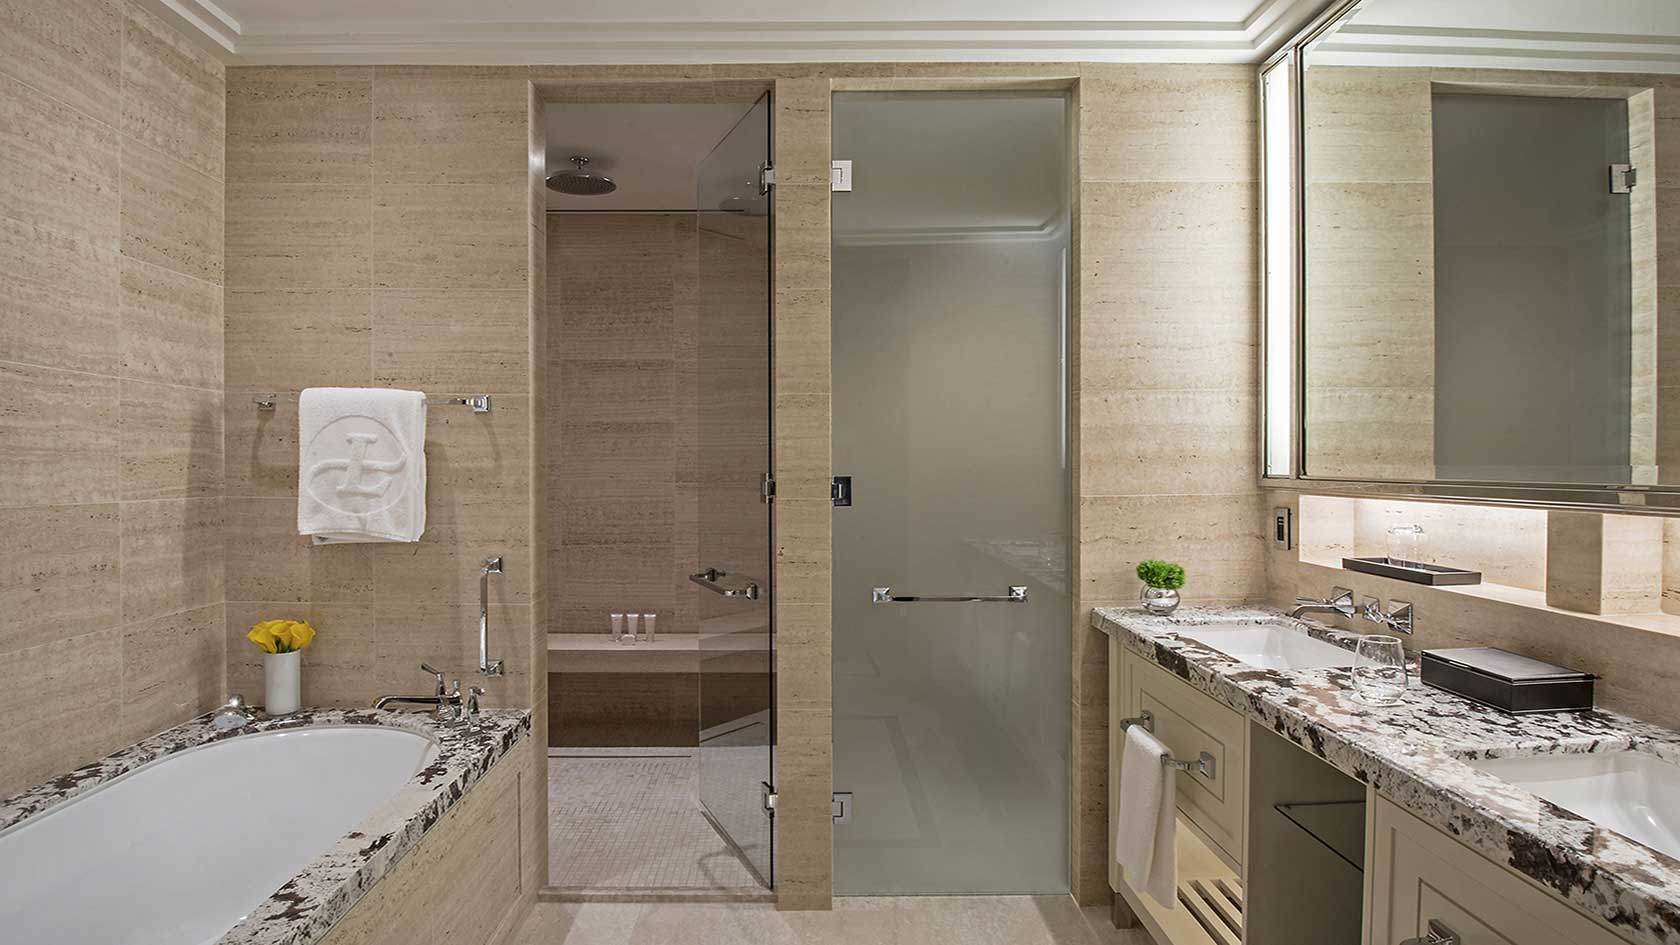 Langham grand room bathroom